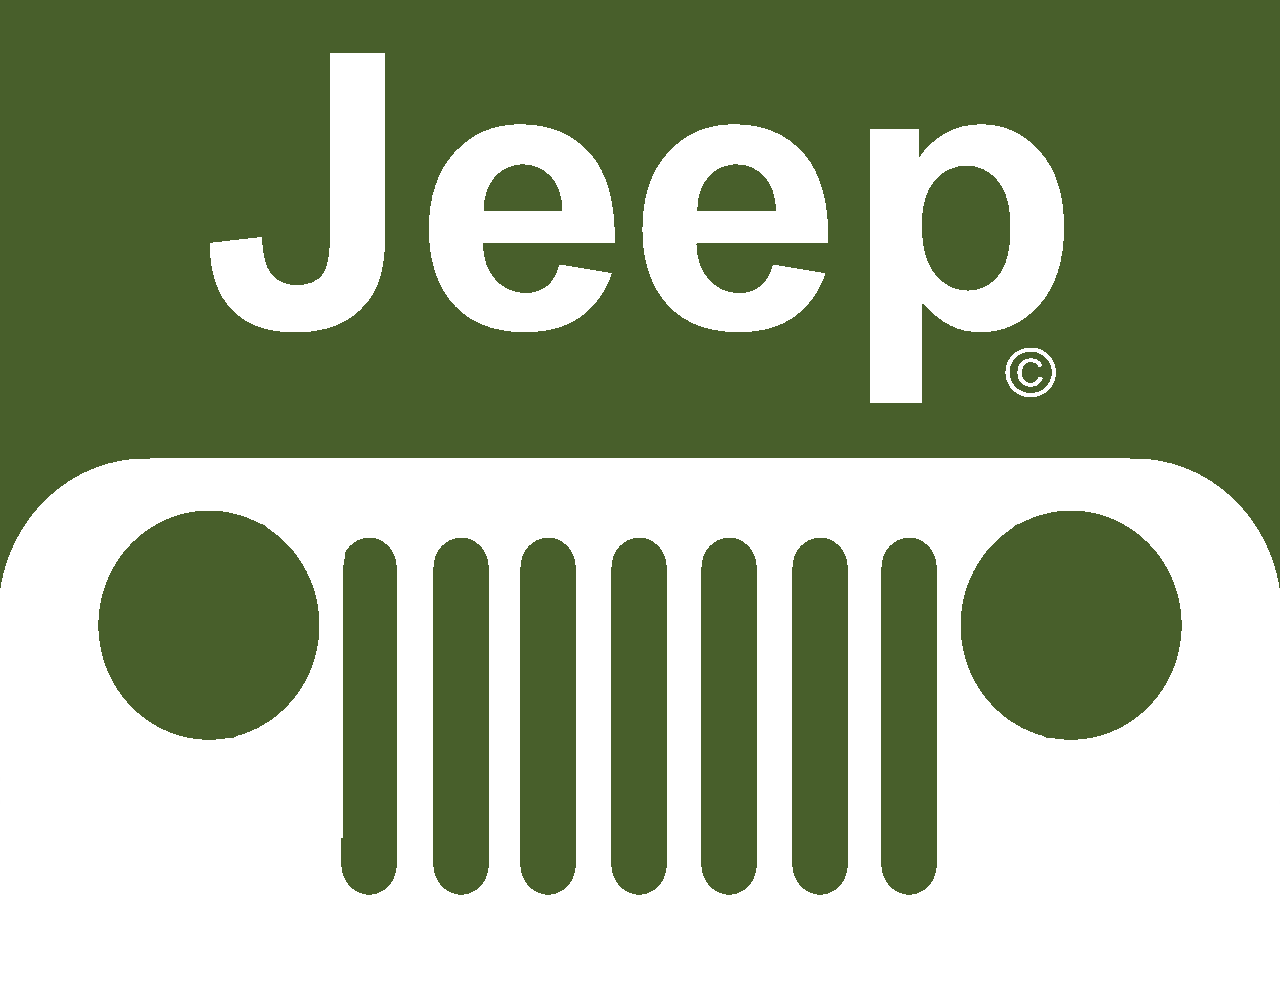 logo of jeep